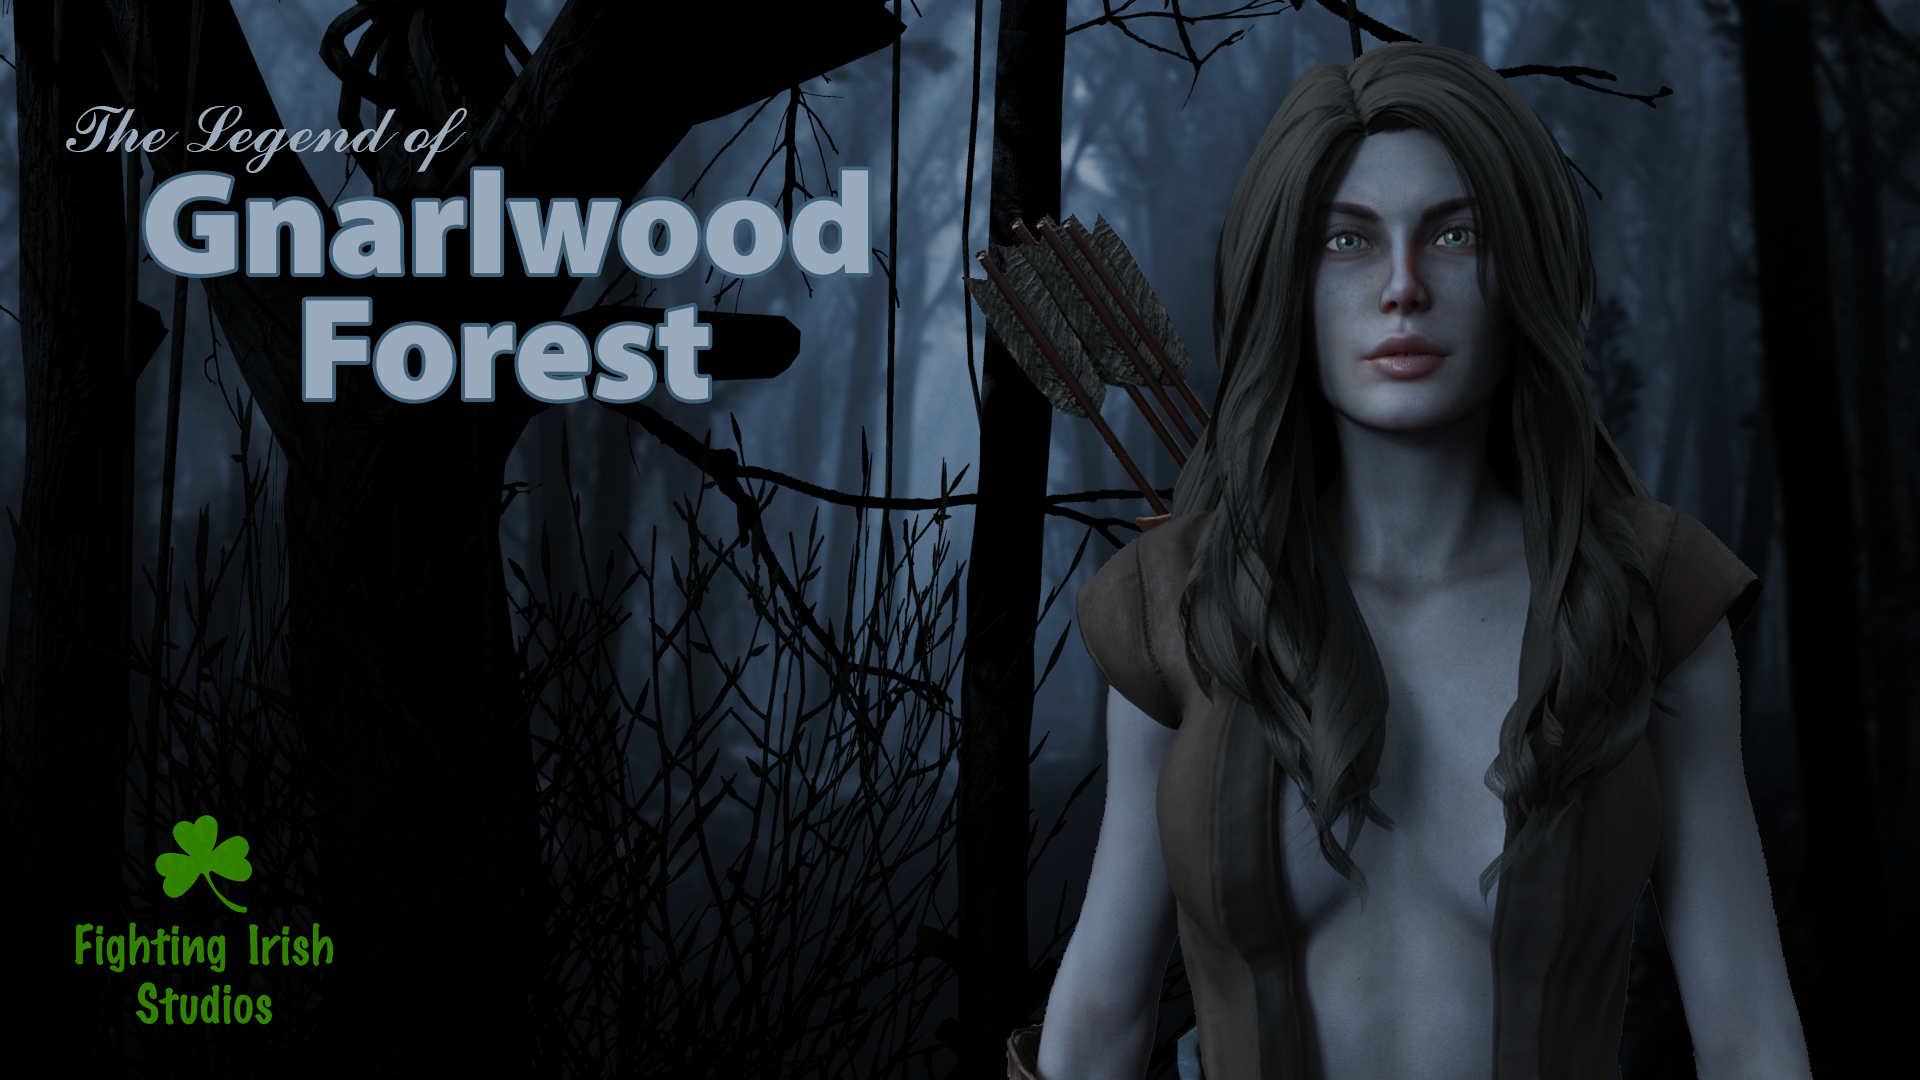 The Legend of Gnarlwood Forest by Fighting Irish Studios